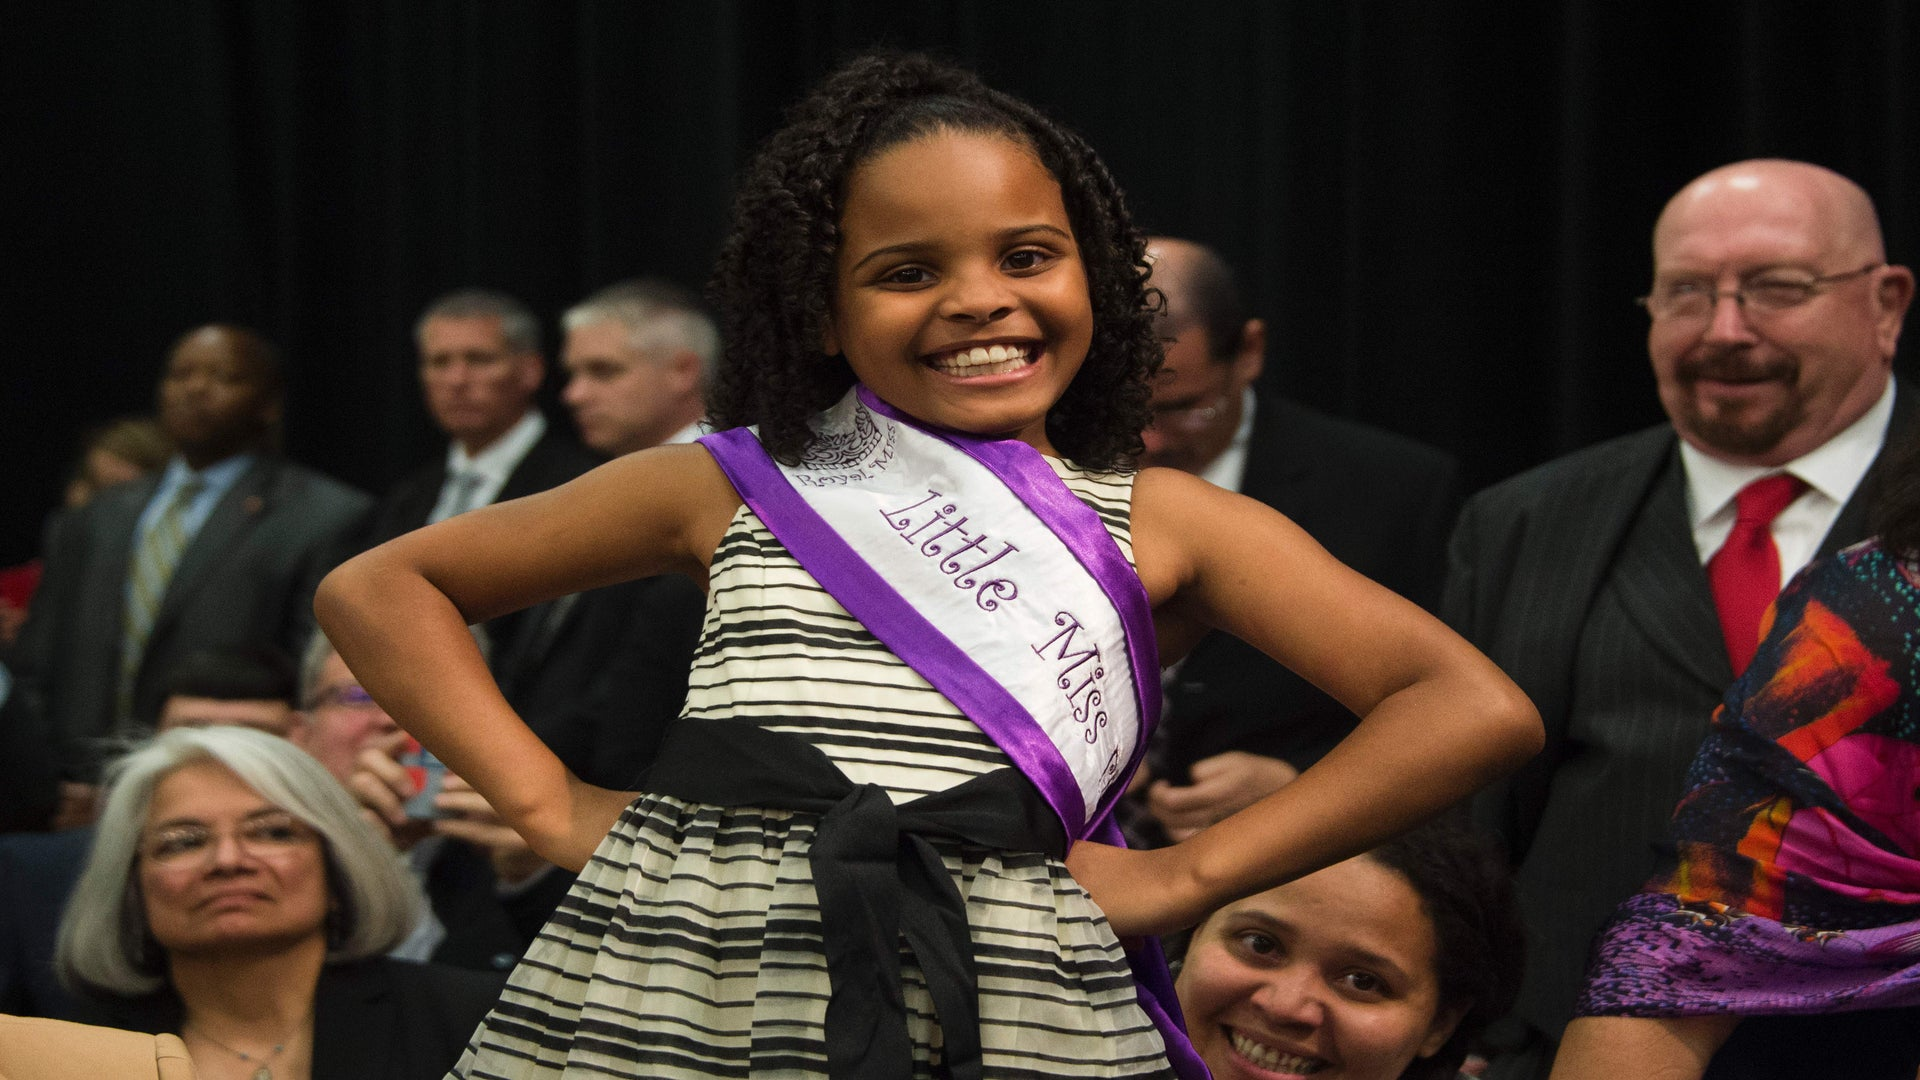 Little Miss Flint Helps Local Kids Get New School Supplies